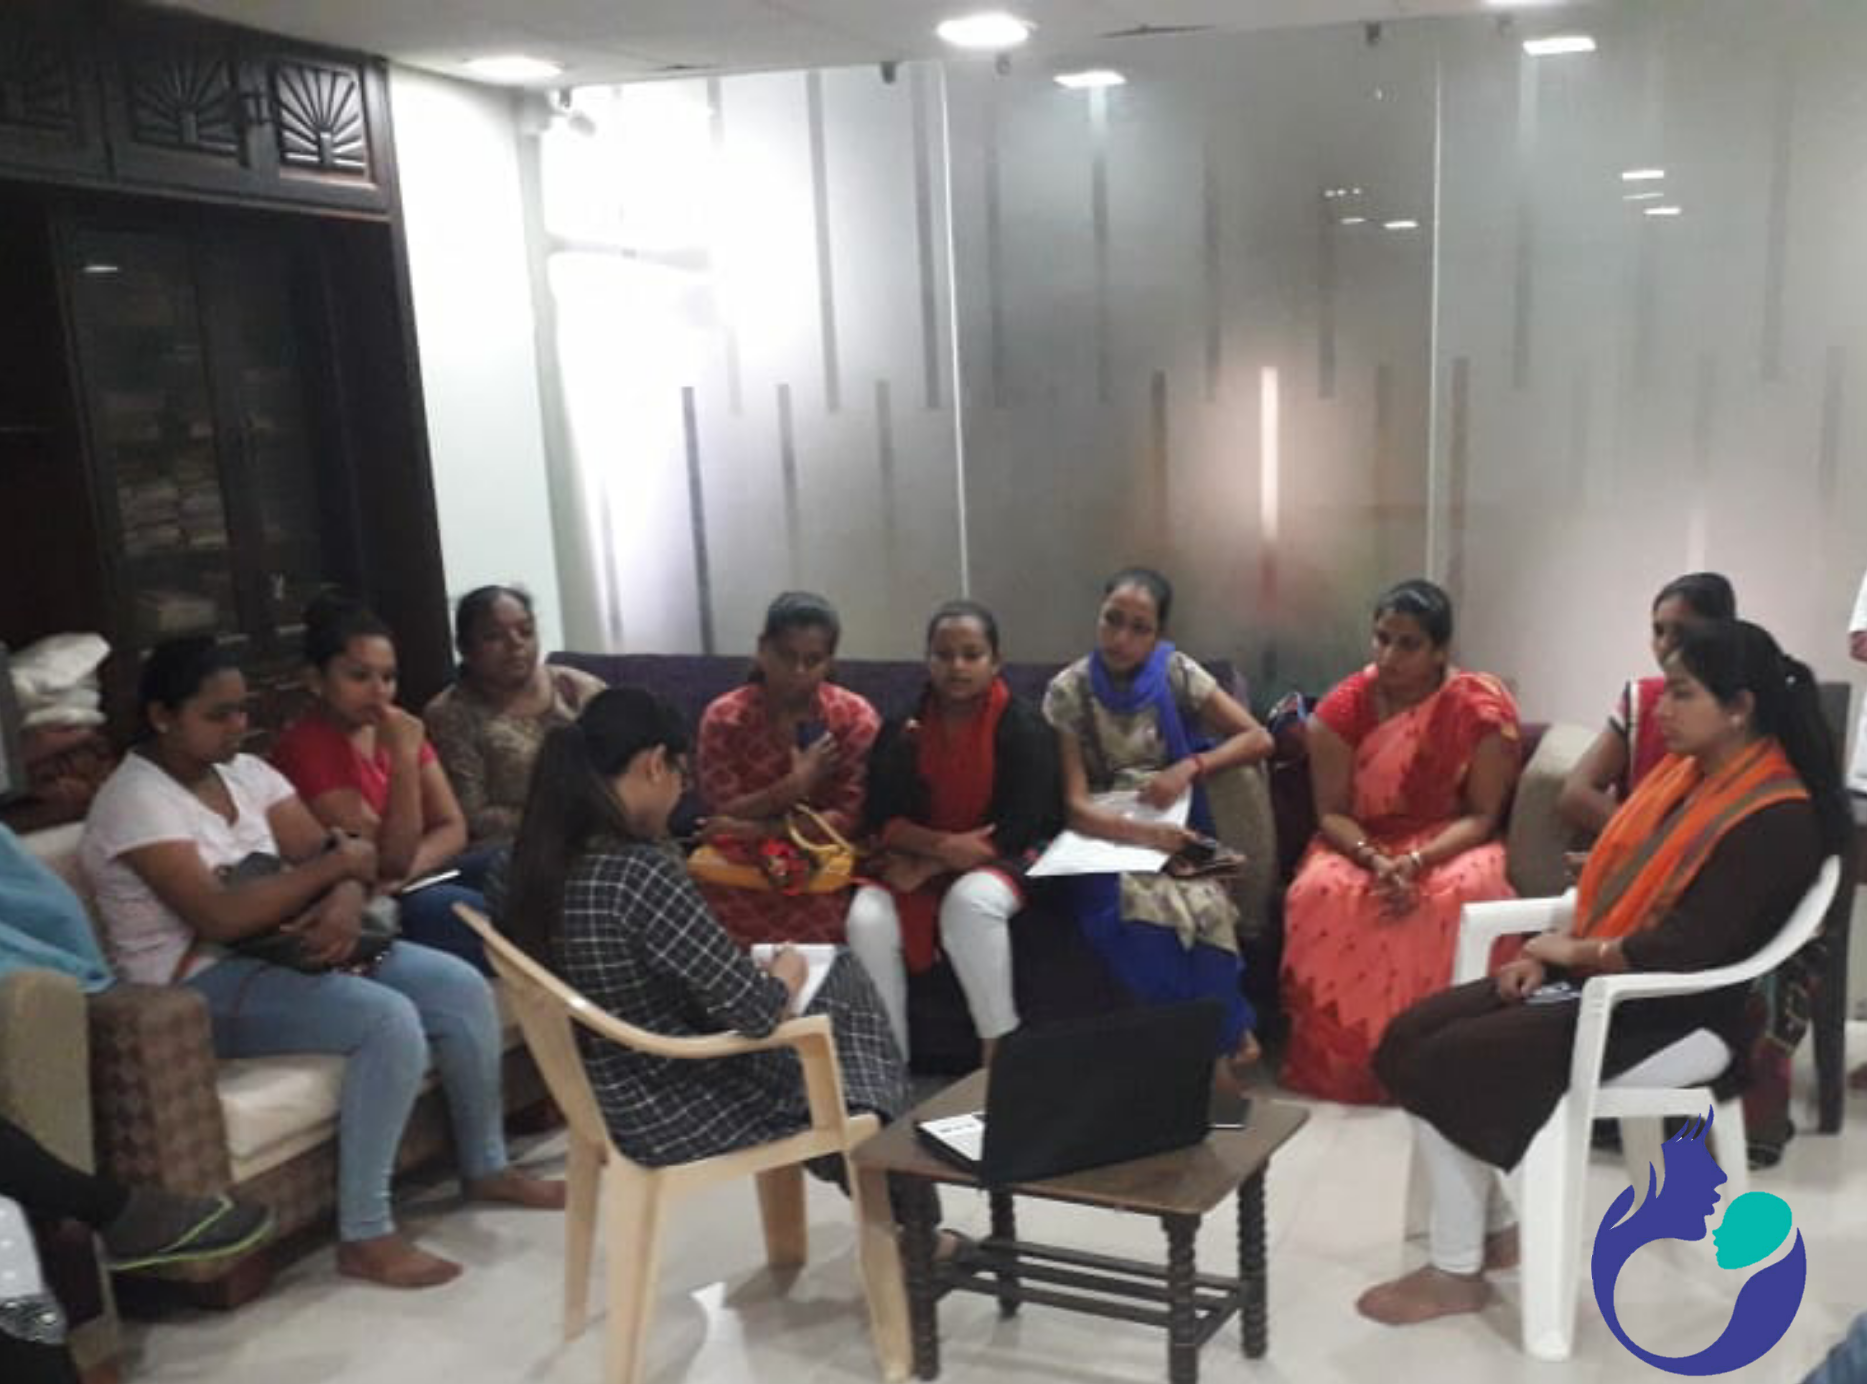 Counselling session at Usha IVF in Anand, GujaratBest IVF Doctor in India